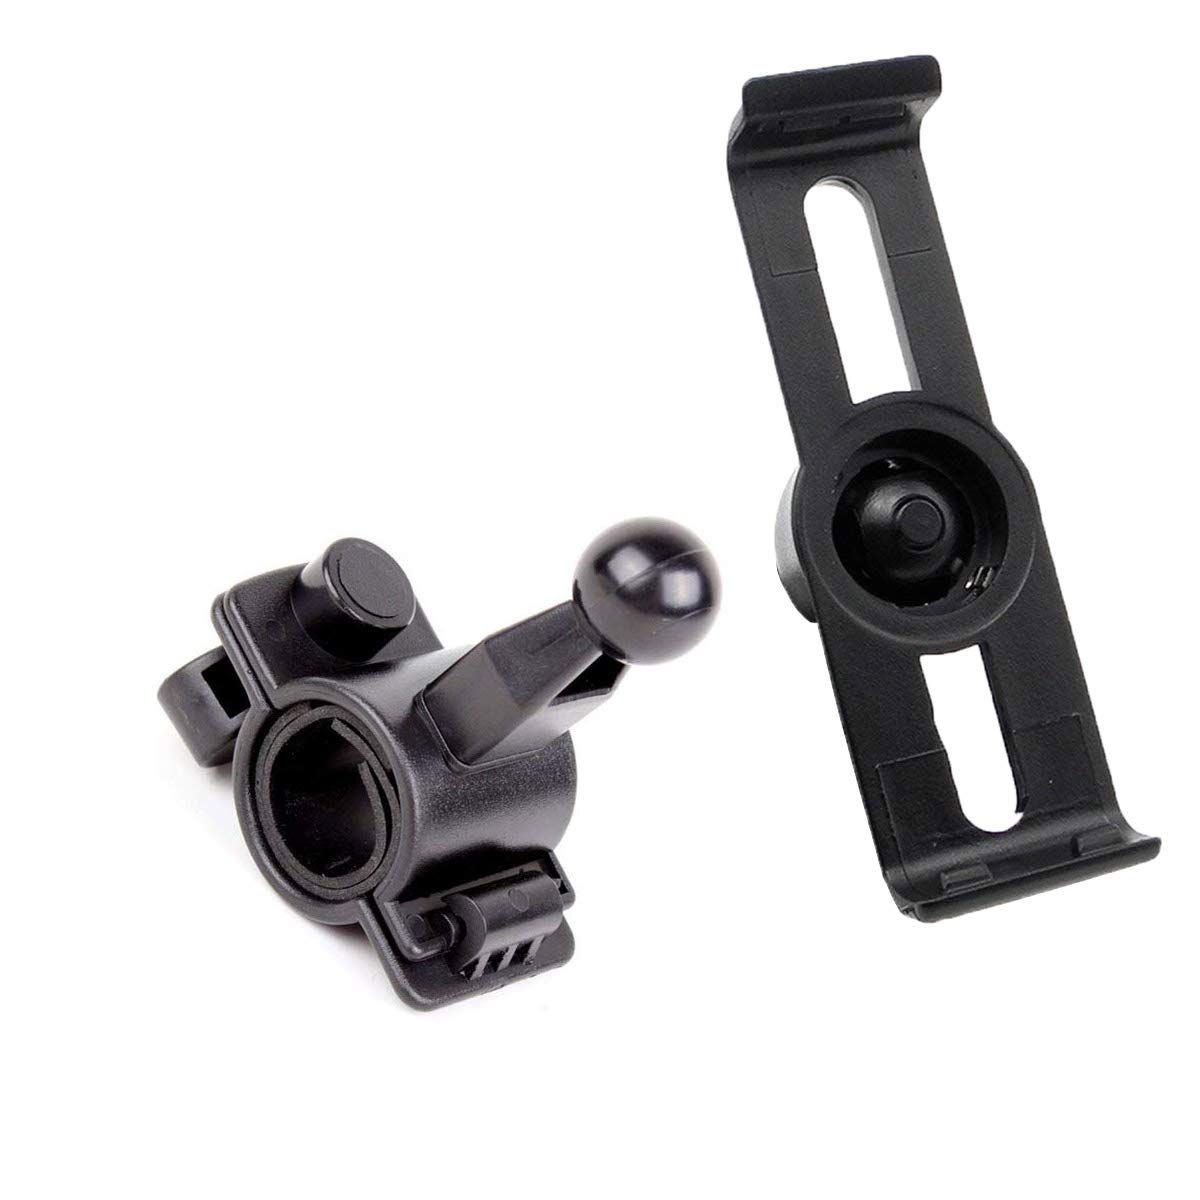 Bracket Cradle Holder For Garmin Nuvi 1450 1450T 1455 1490 1490T 1495